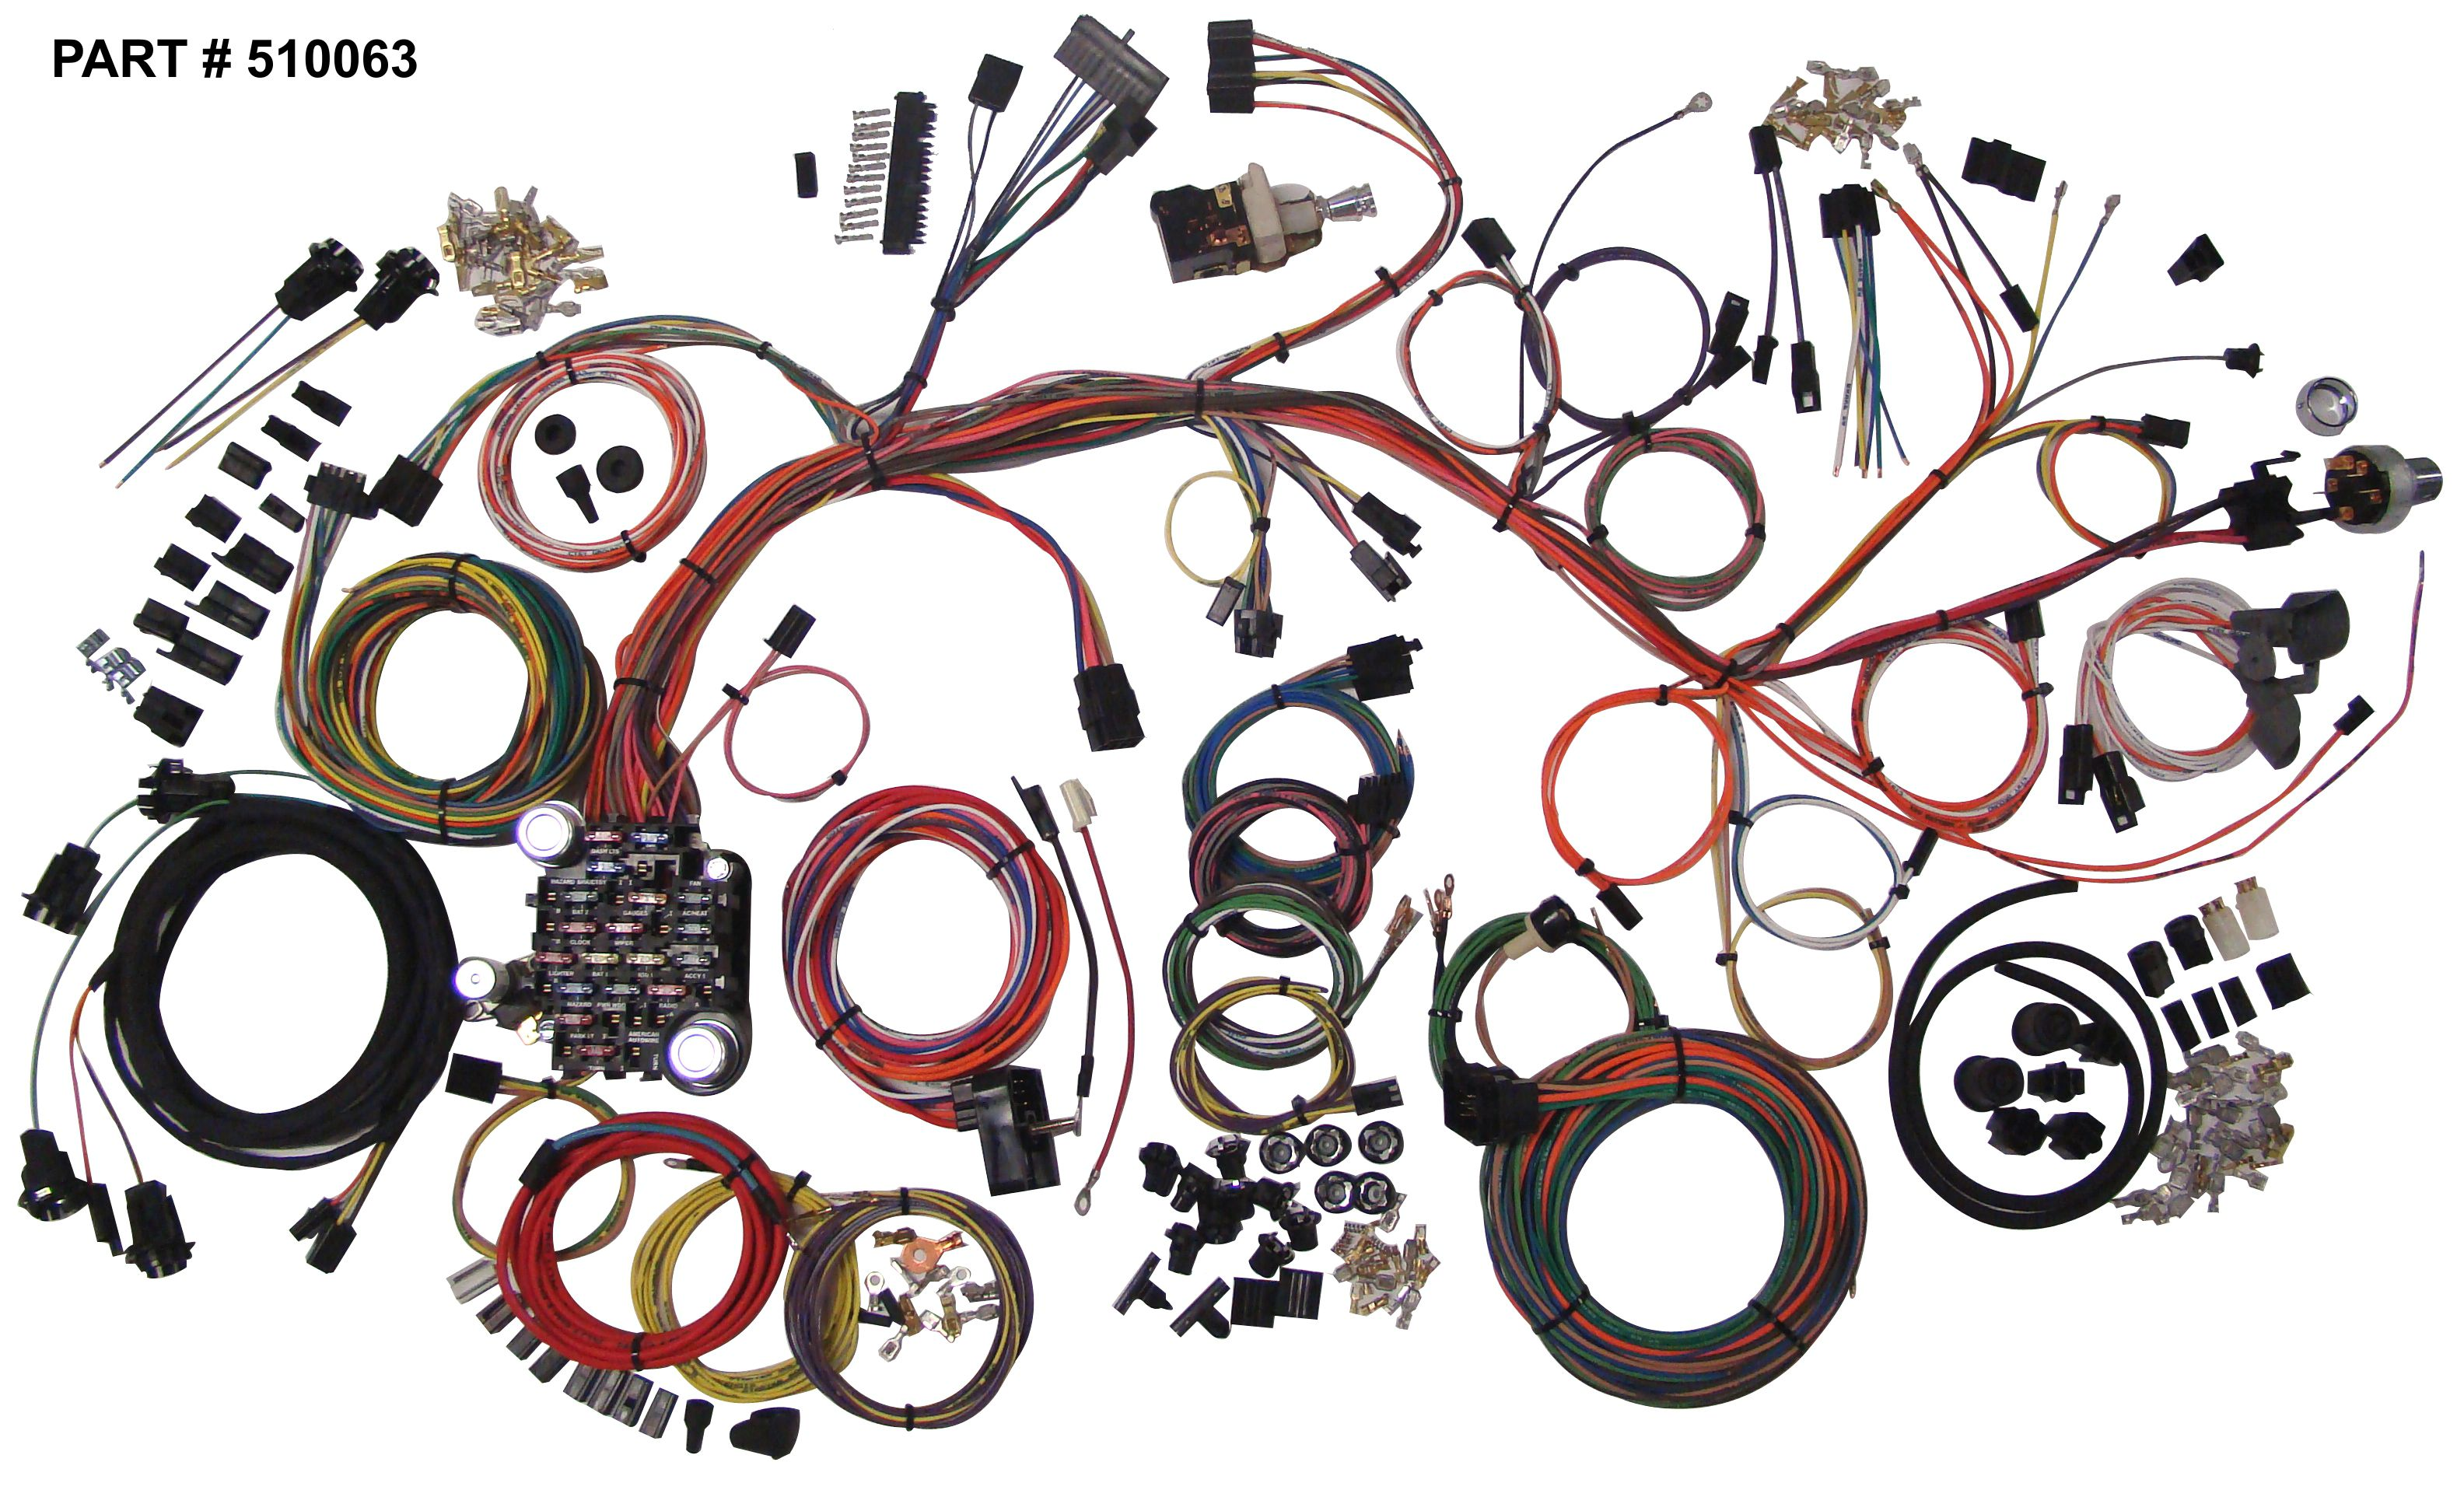 68 Impala Wiring Harness Library Suzuki Khyber And Old Parts 1961 1964 Chevrolet Restomod System Rh Lectriclimited Com 1968 1962